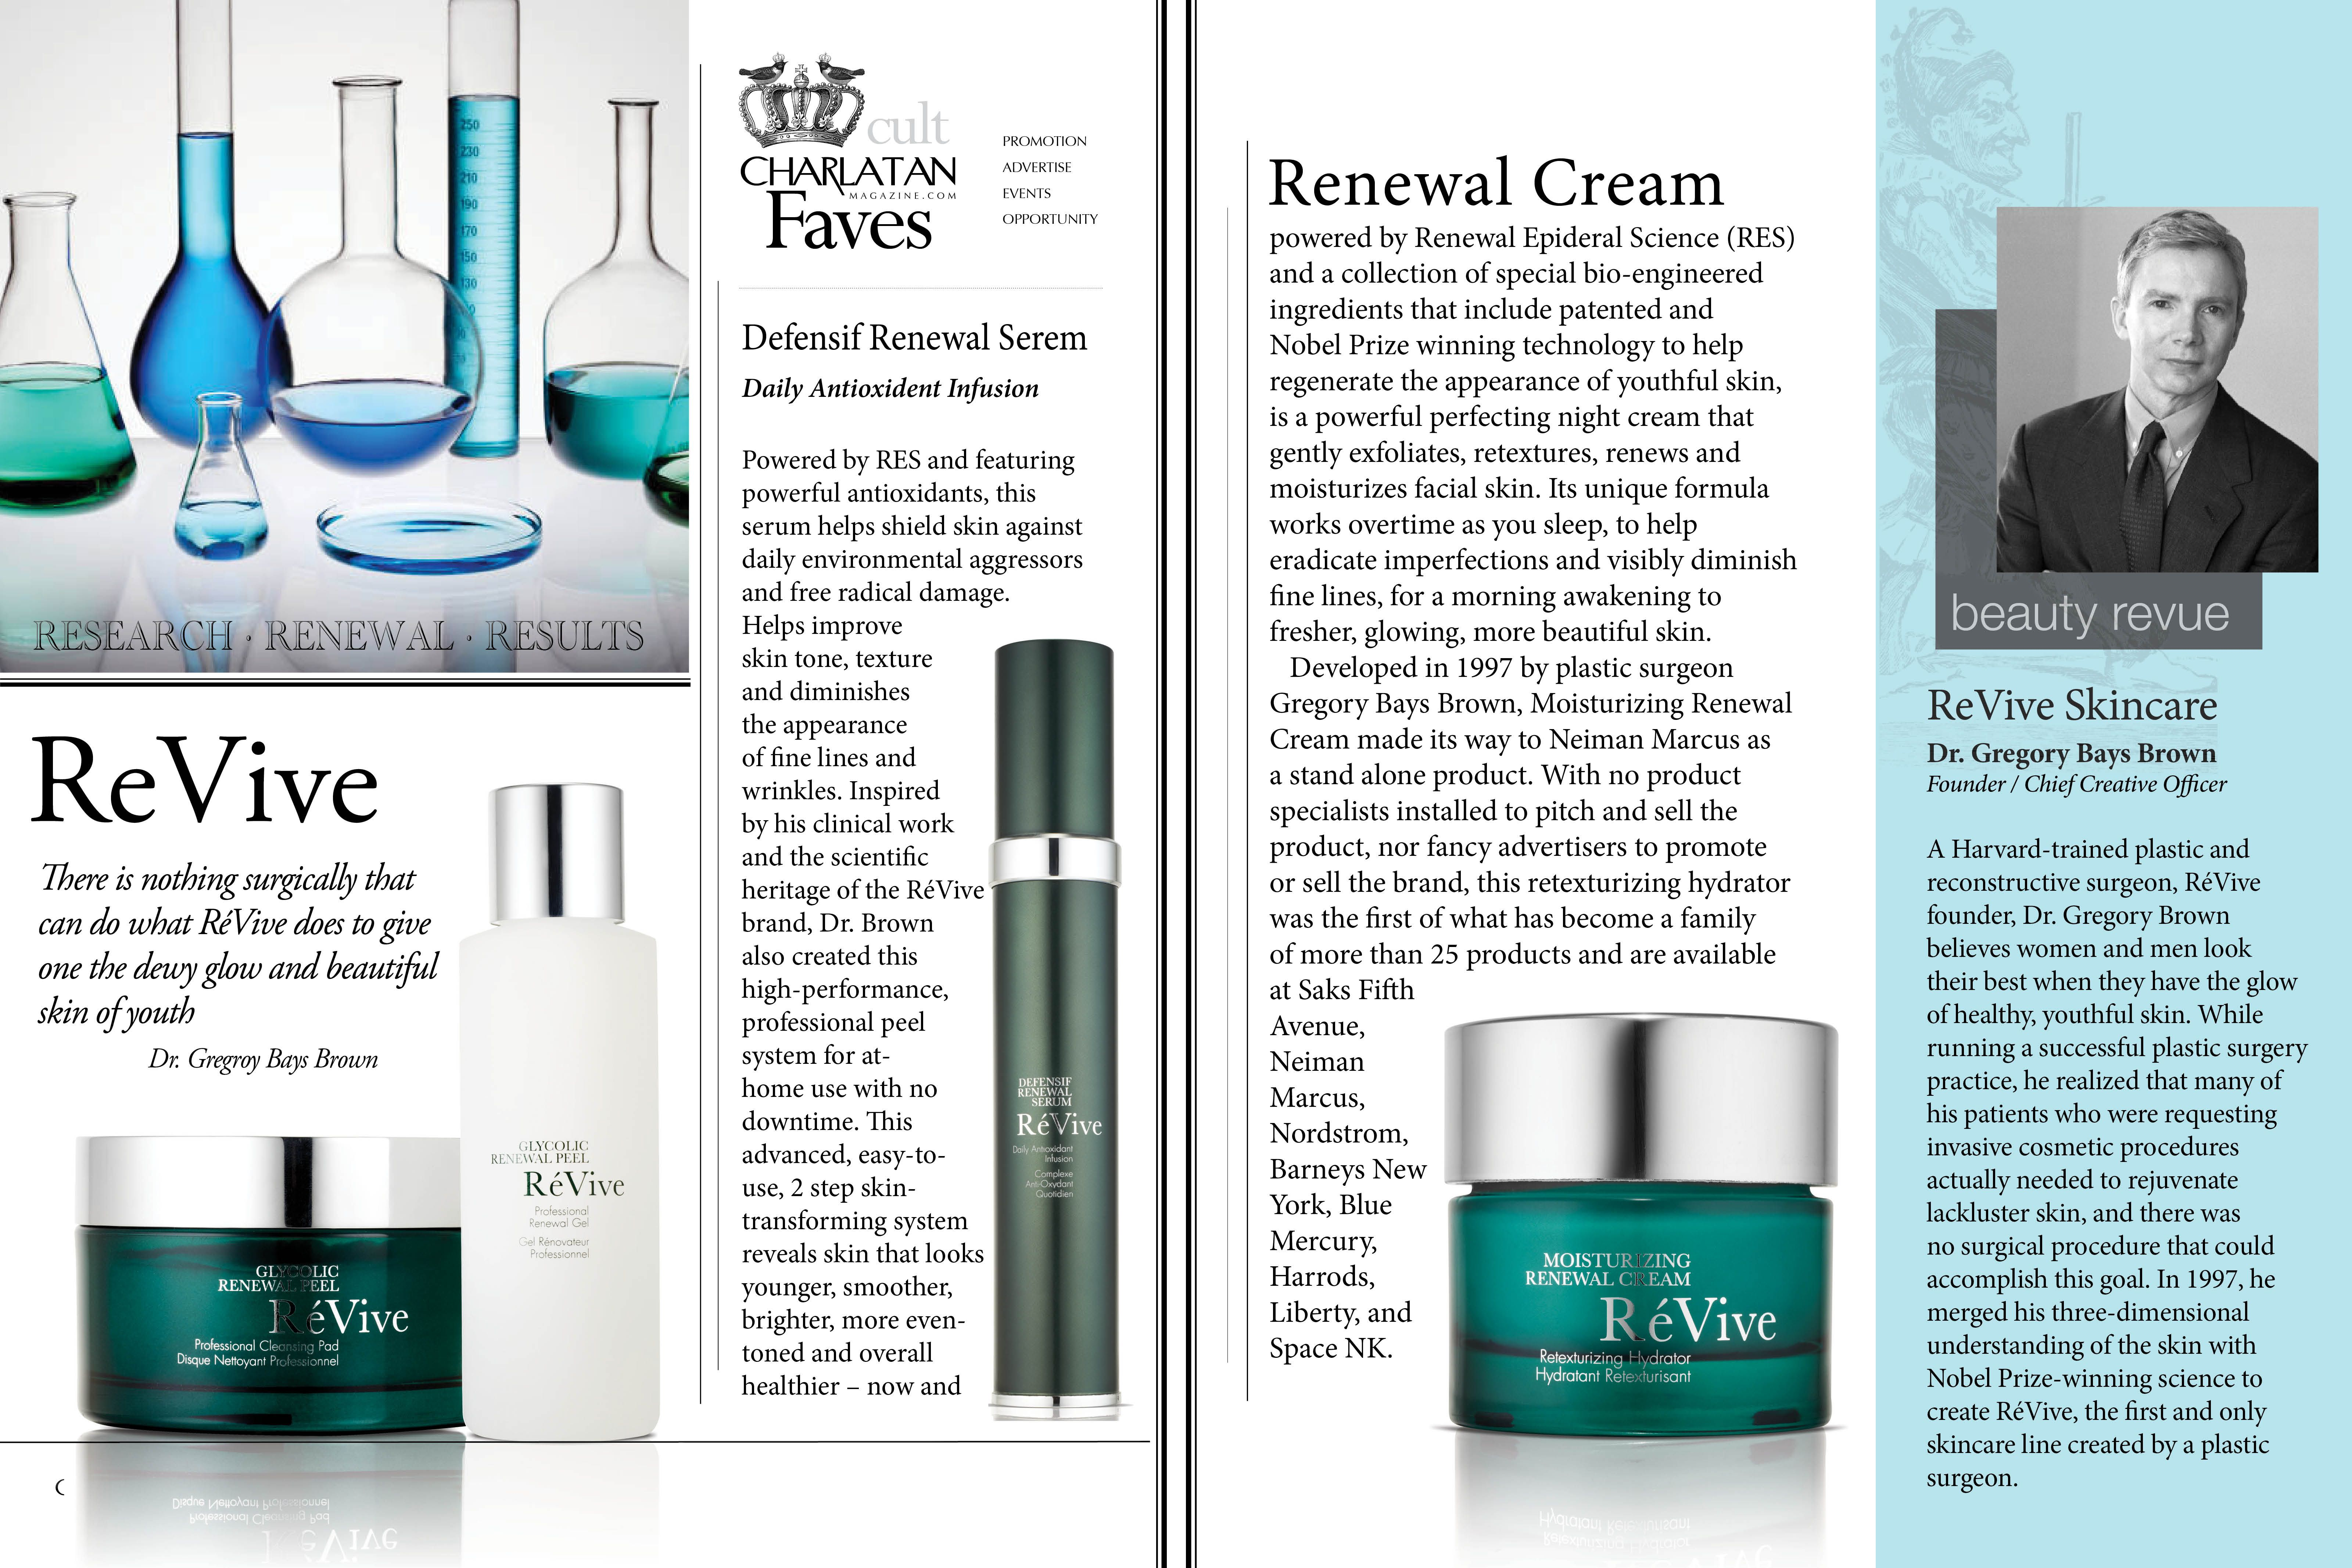 Research Renewal Results Revive Skincare Introduces The Epidermal Growth Factor Into The Science And Techn Revive Skincare Skin Care Epidermal Growth Factor